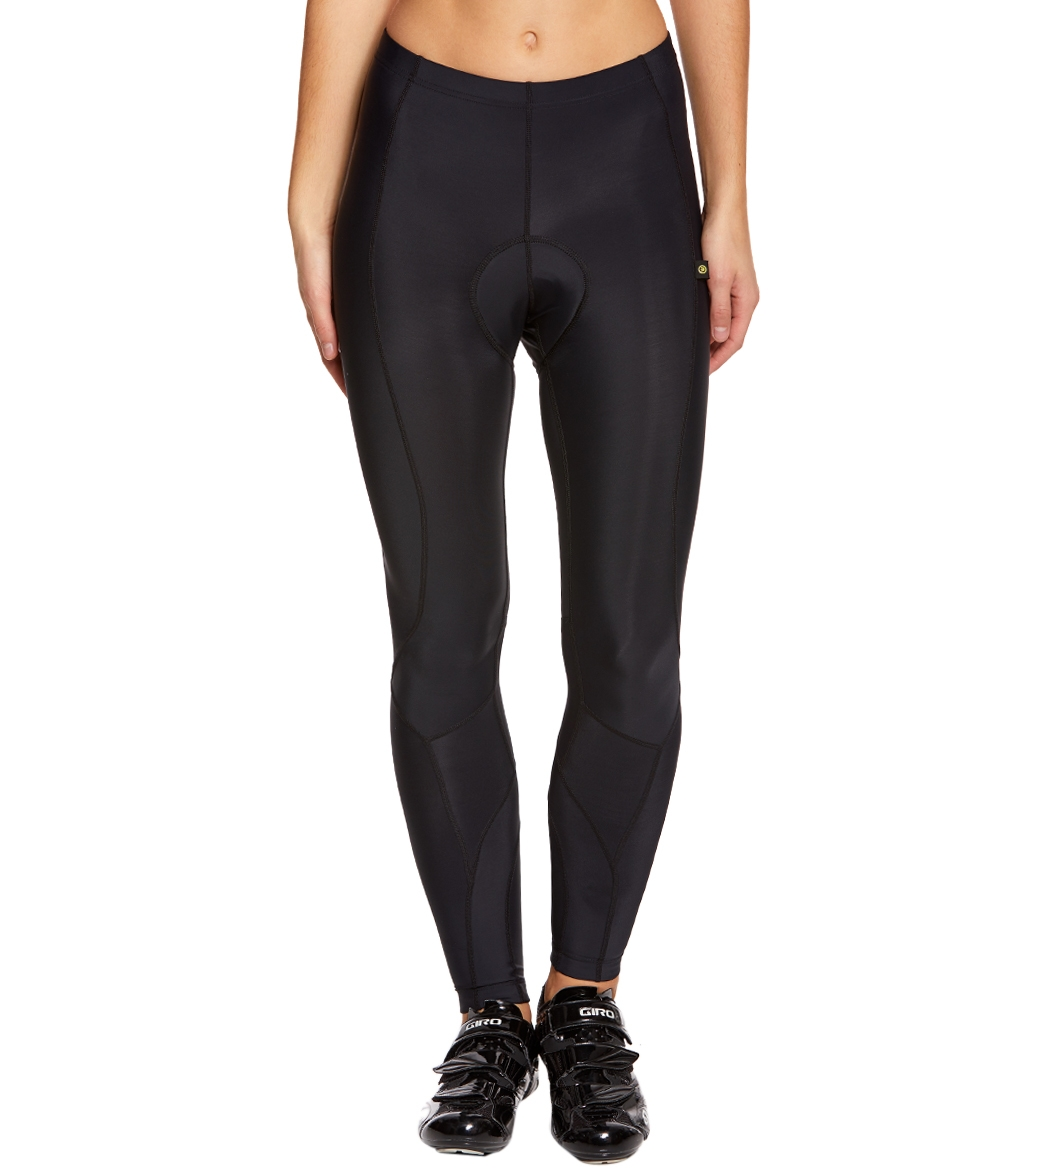 Canari Women s Spiral Cycling Tight at SwimOutlet.com - Free Shipping 1f0694120